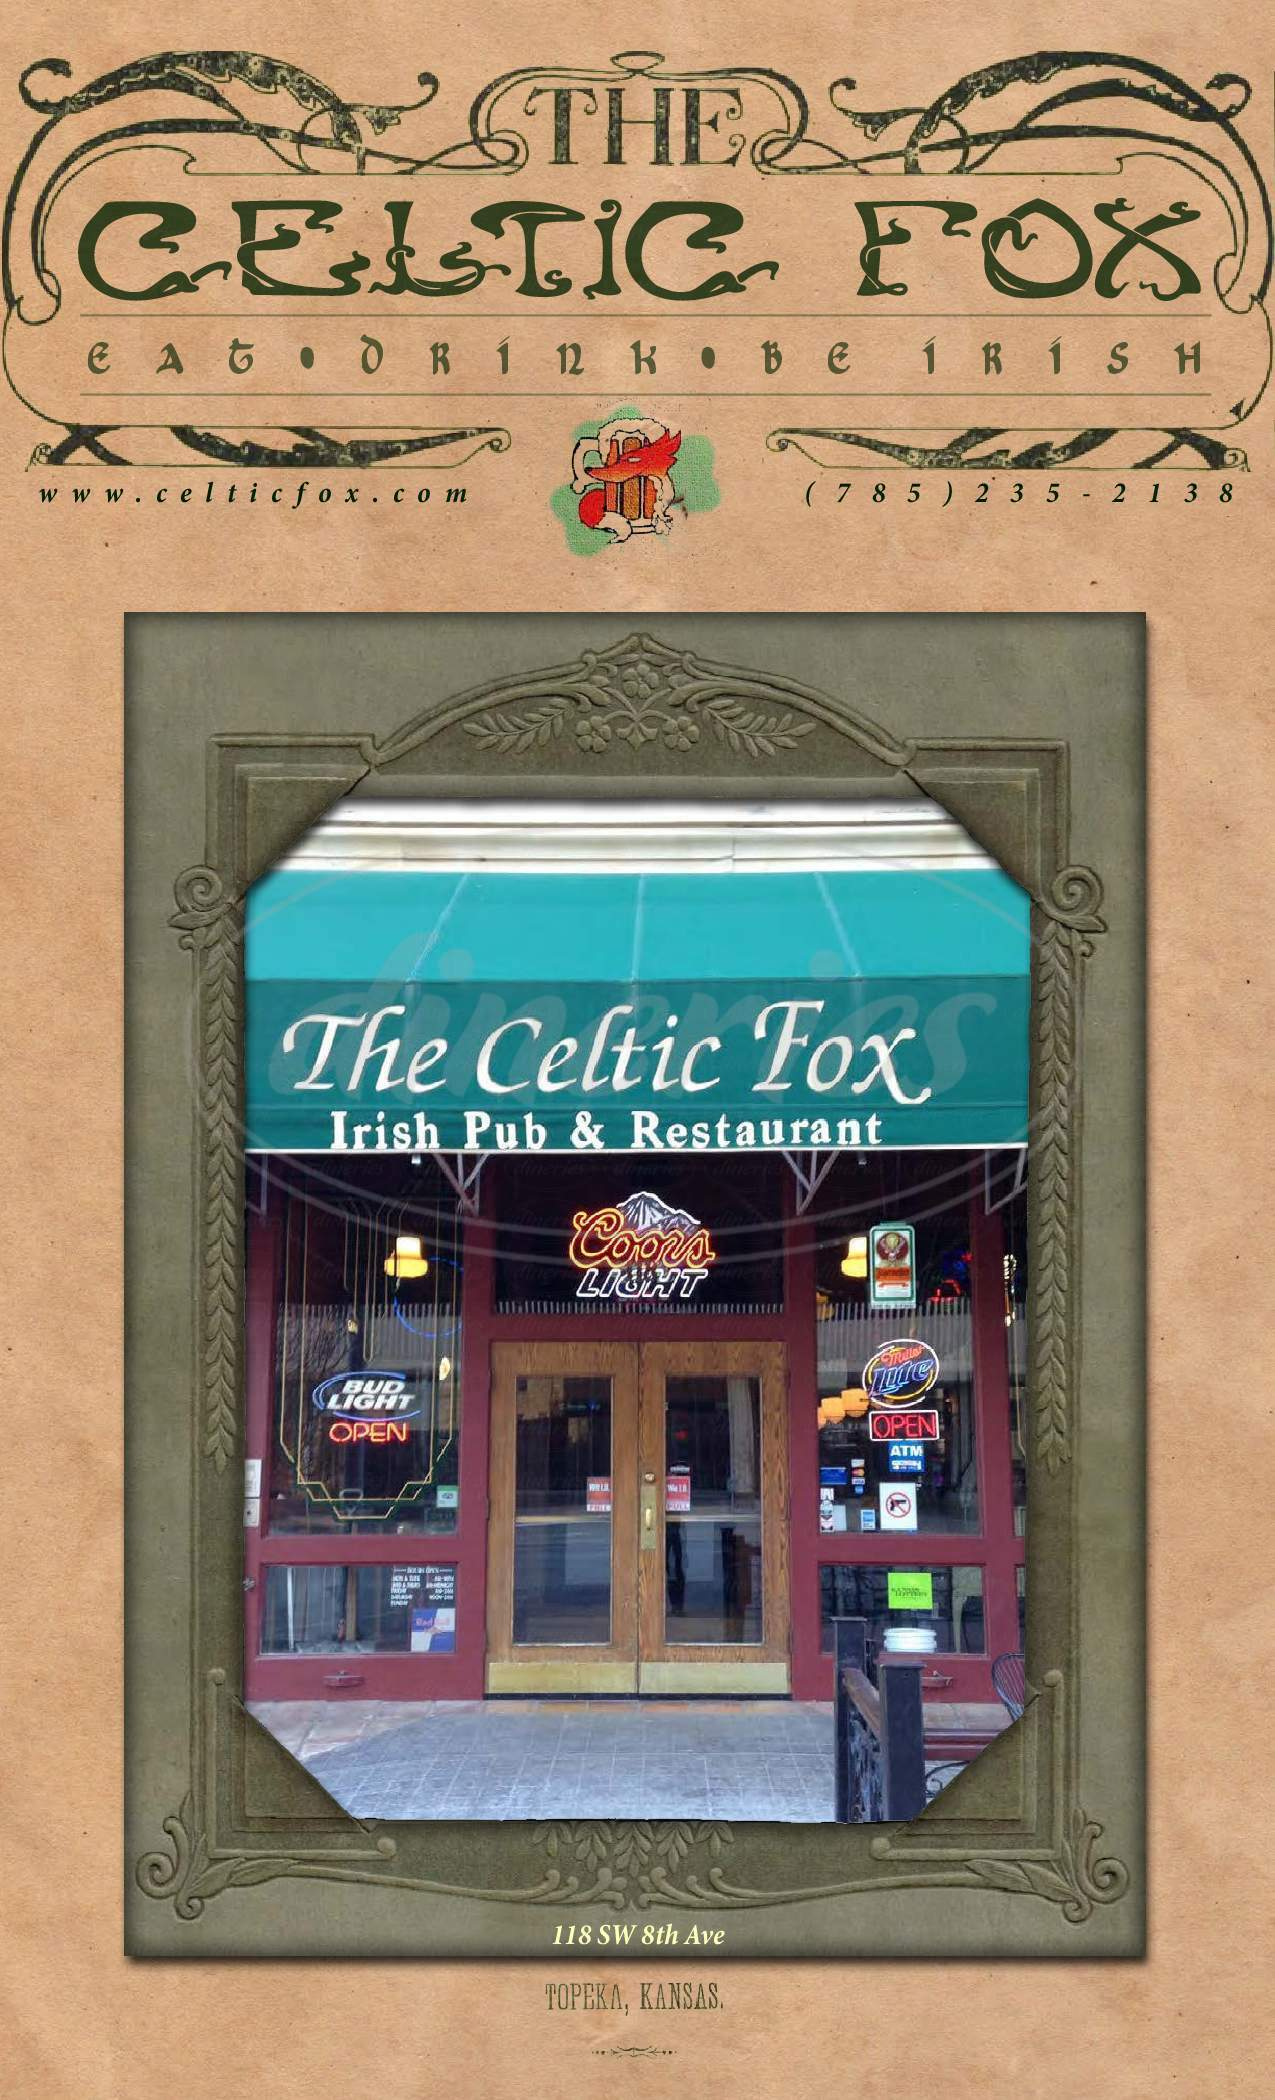 menu for The Celtic Fox